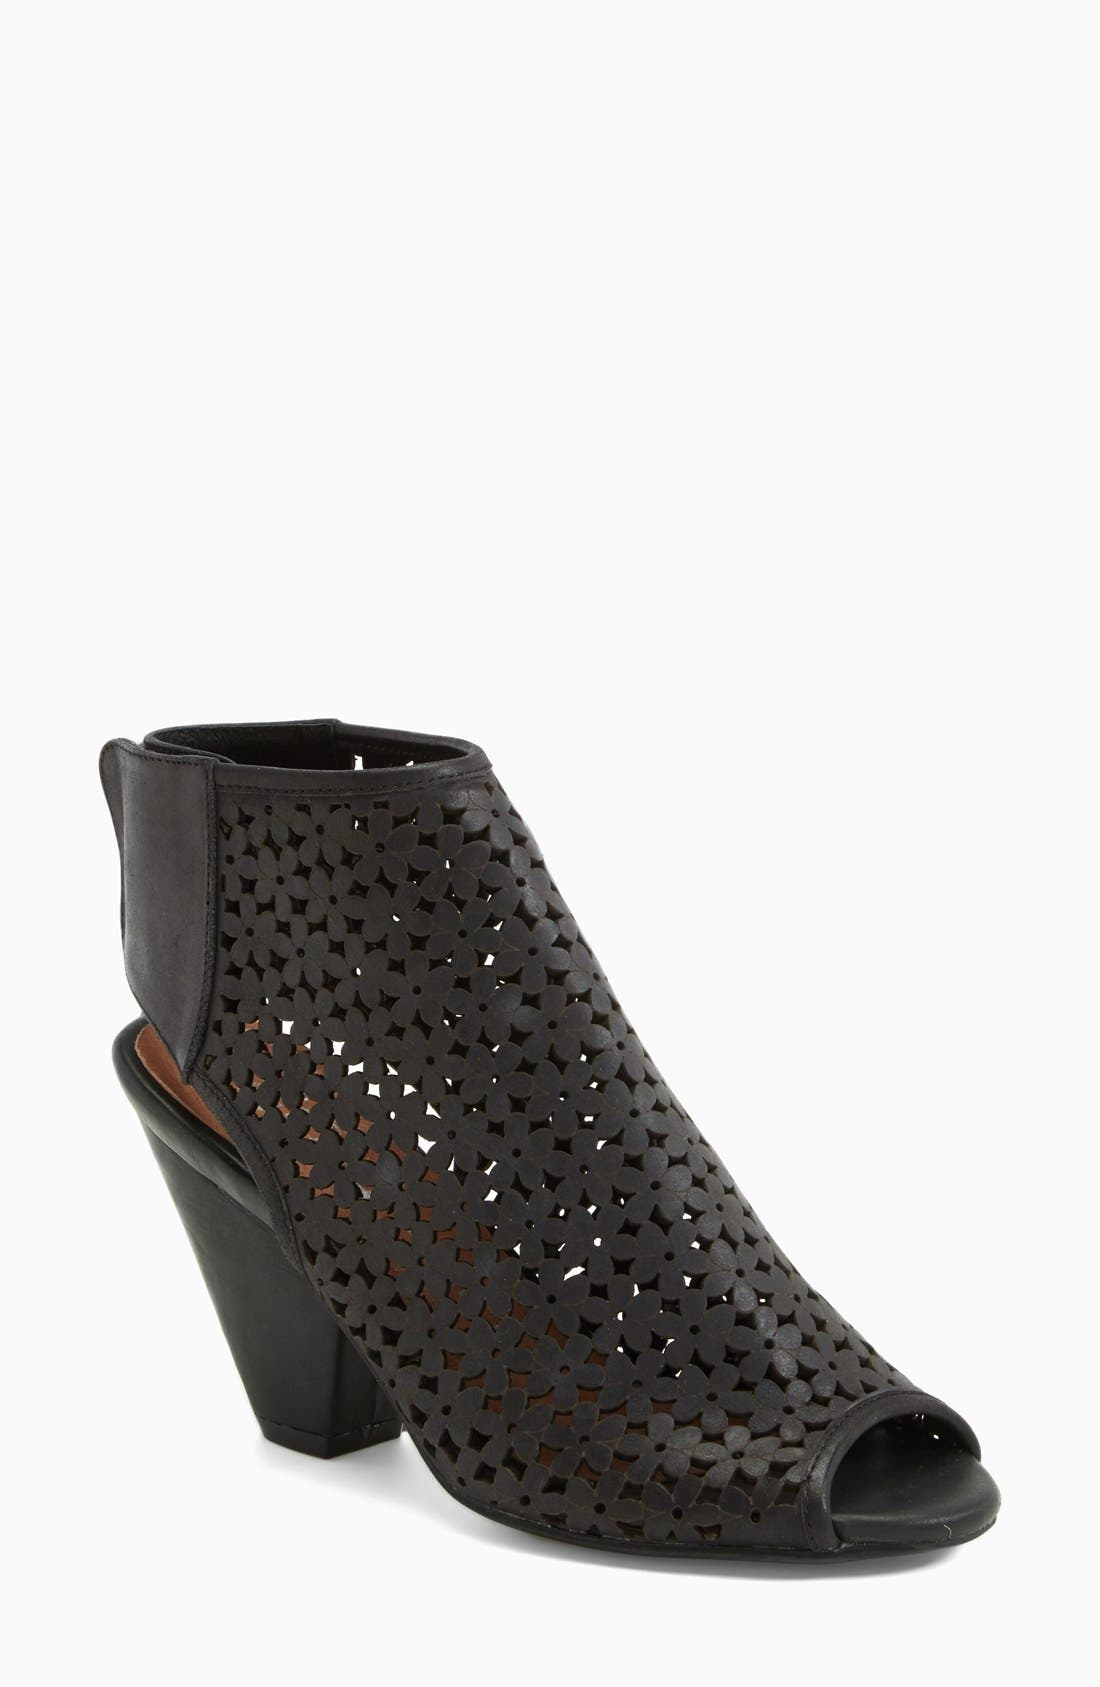 Alternate Image 1 Selected - Jeffrey Campbell 'Premier' Leather Ankle Boot (Women)